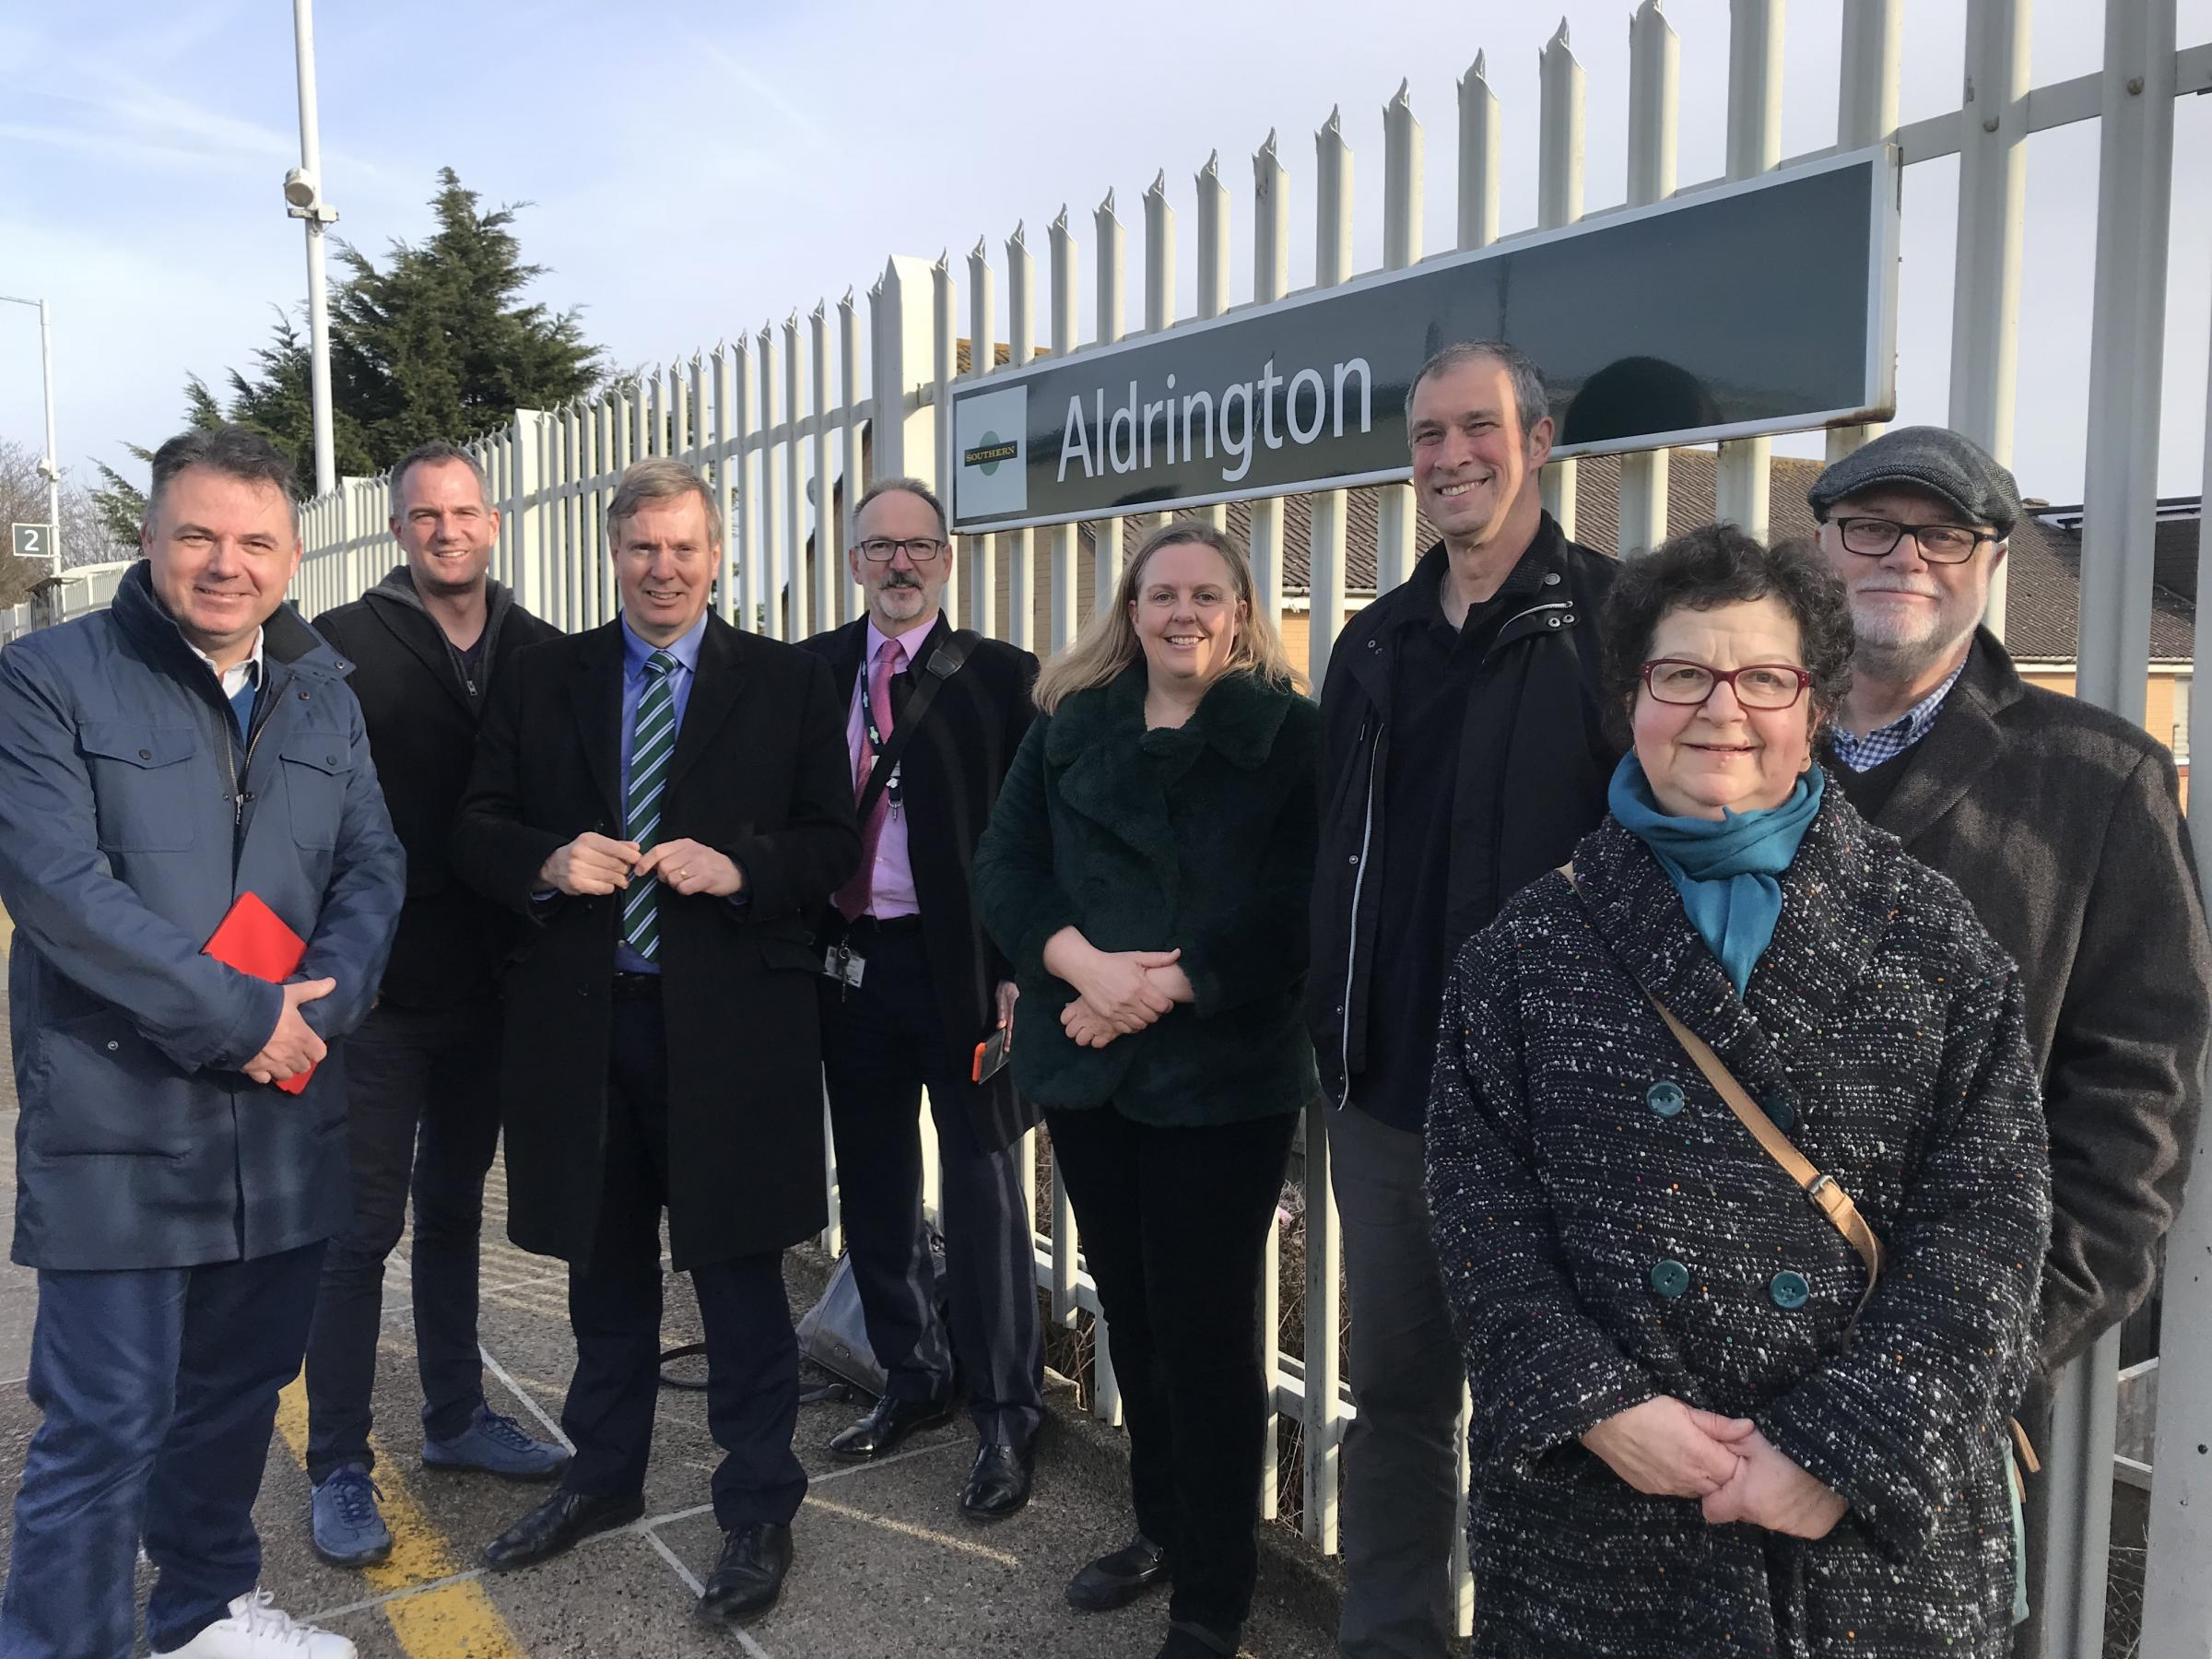 Politicians meet rail bosses at Aldrington Station